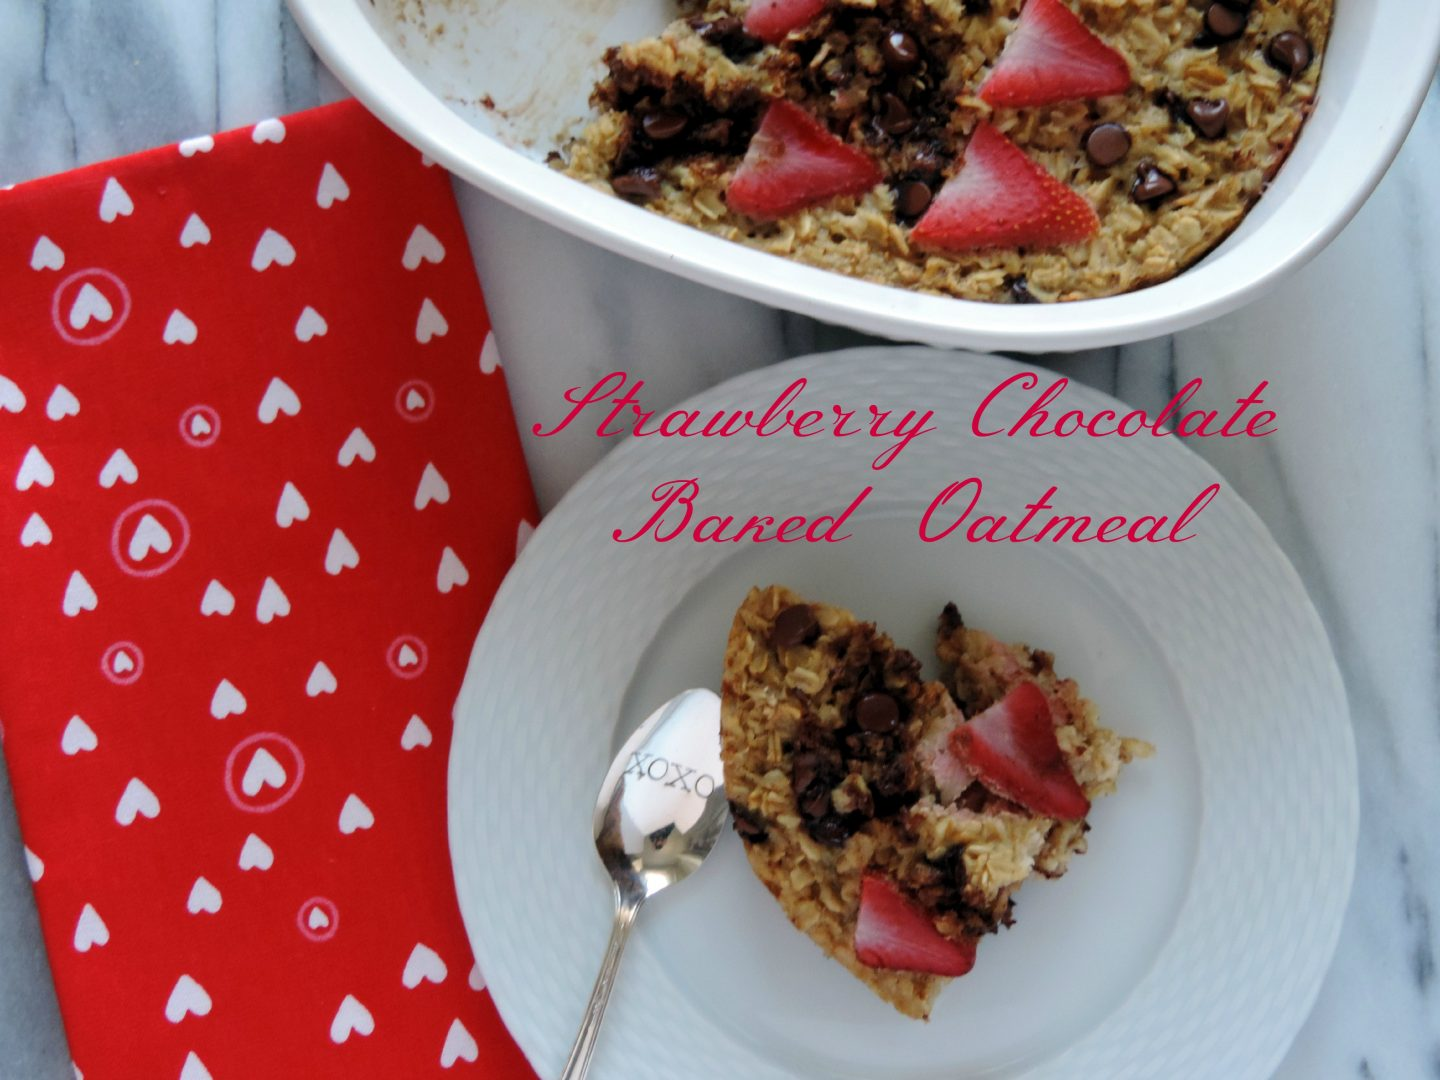 Strawberry Chocolate Baked Oatmeal